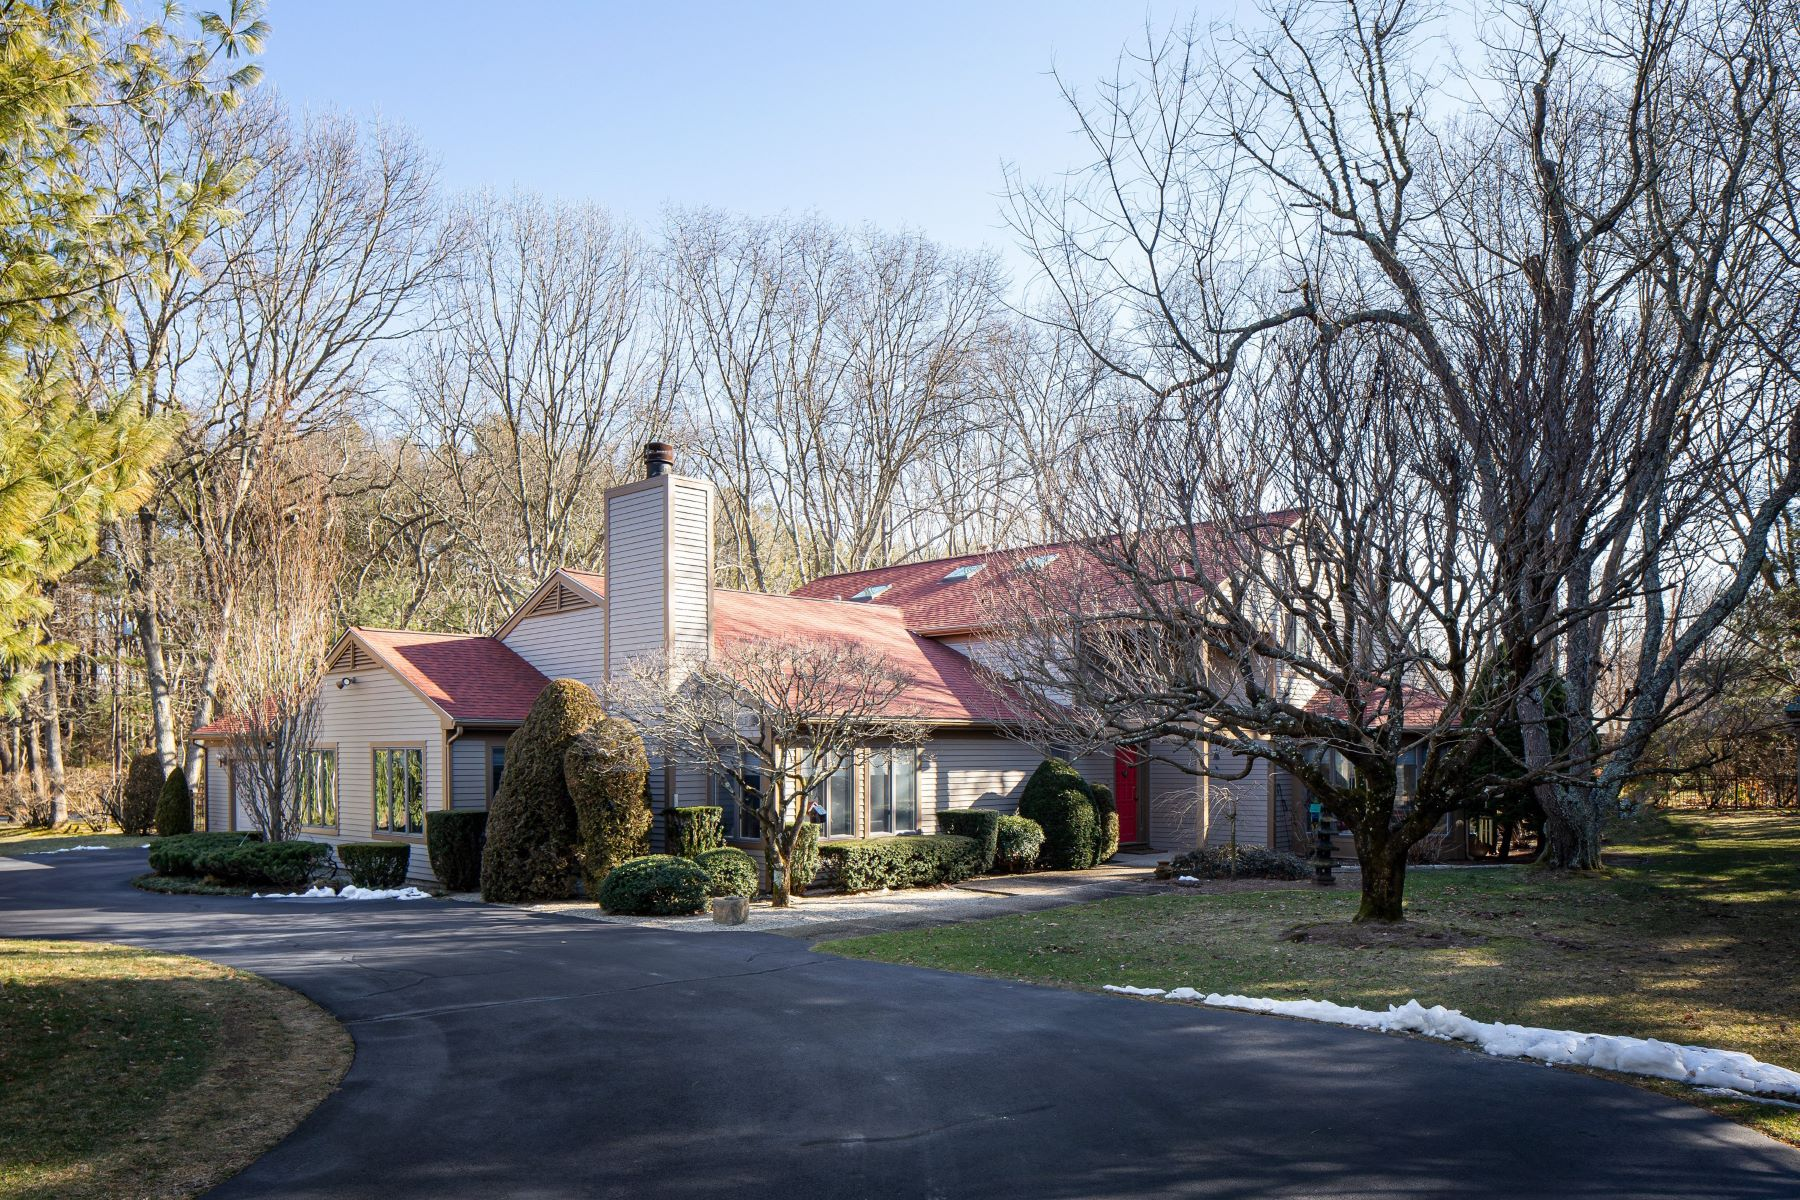 Single Family Homes for Sale at 2 Spinnaker Drive, Barrington, RI 2 Spinnaker Drive Barrington, Rhode Island 02806 United States